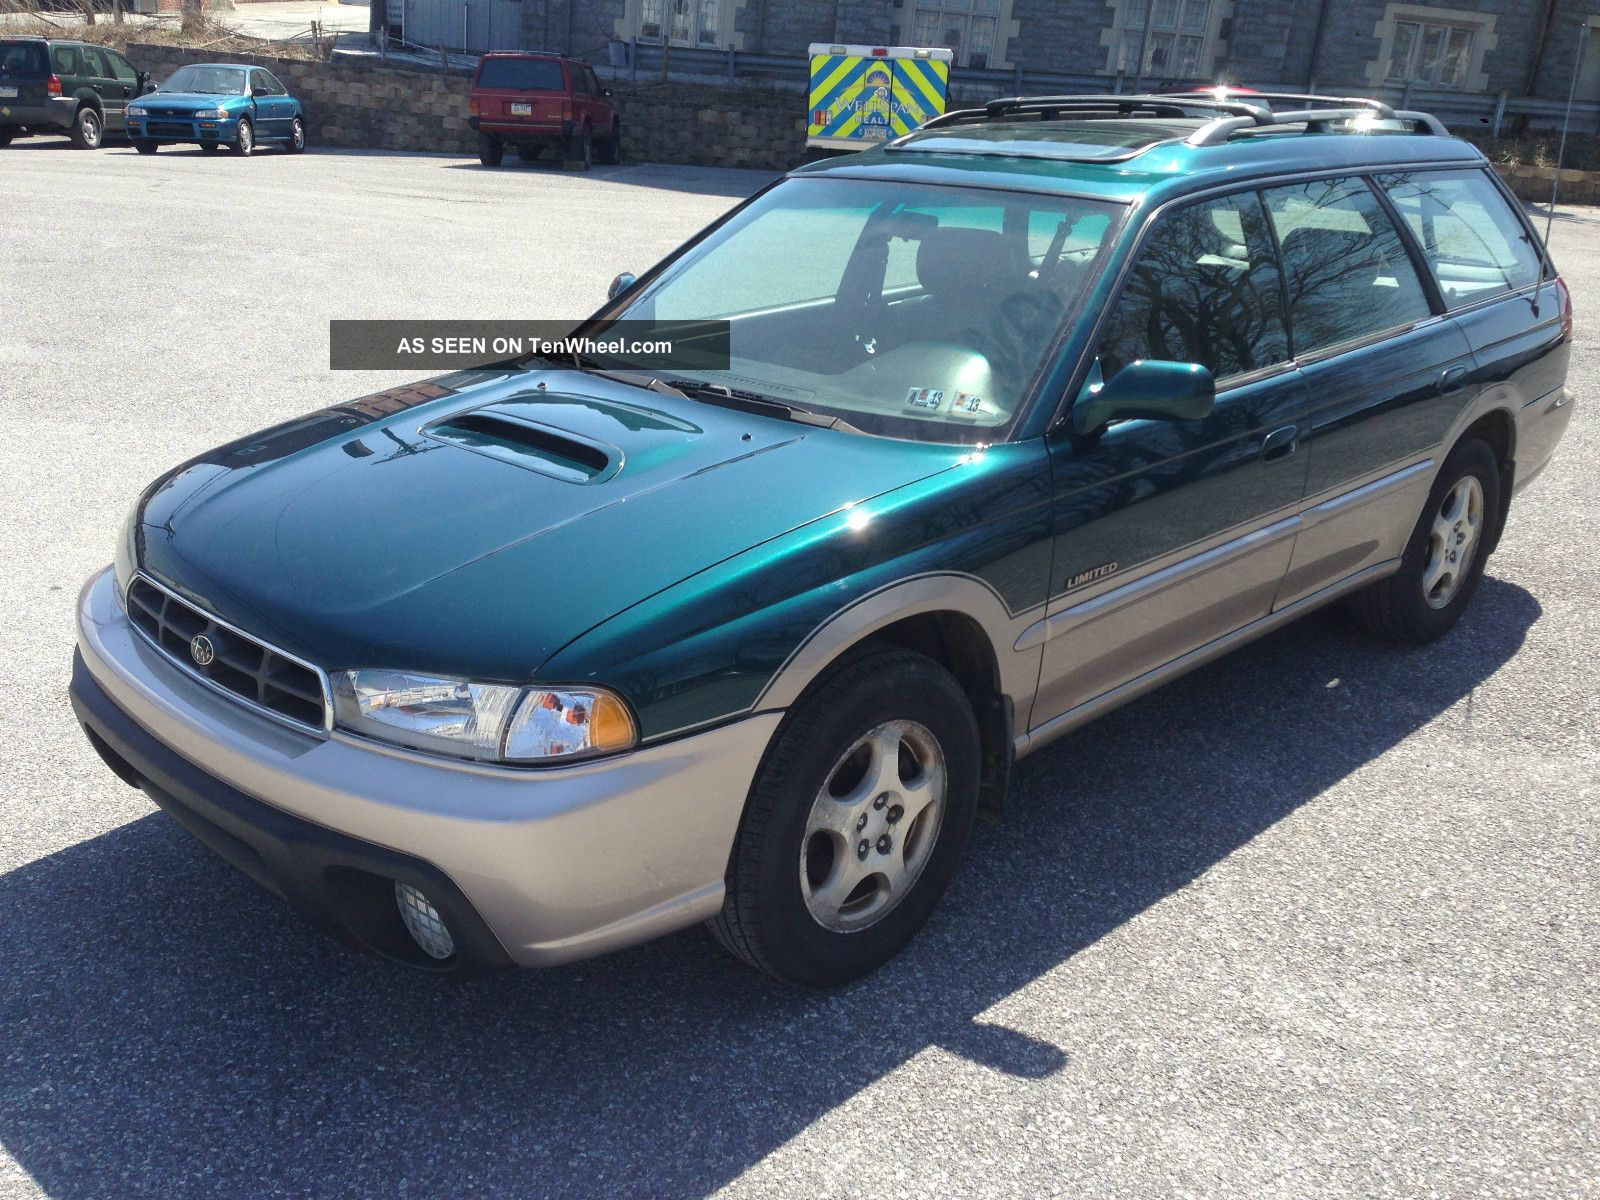 Jeep Cherokee Color Options 1999 Subaru Legacy Outback Limited Wagon 4 - Door,